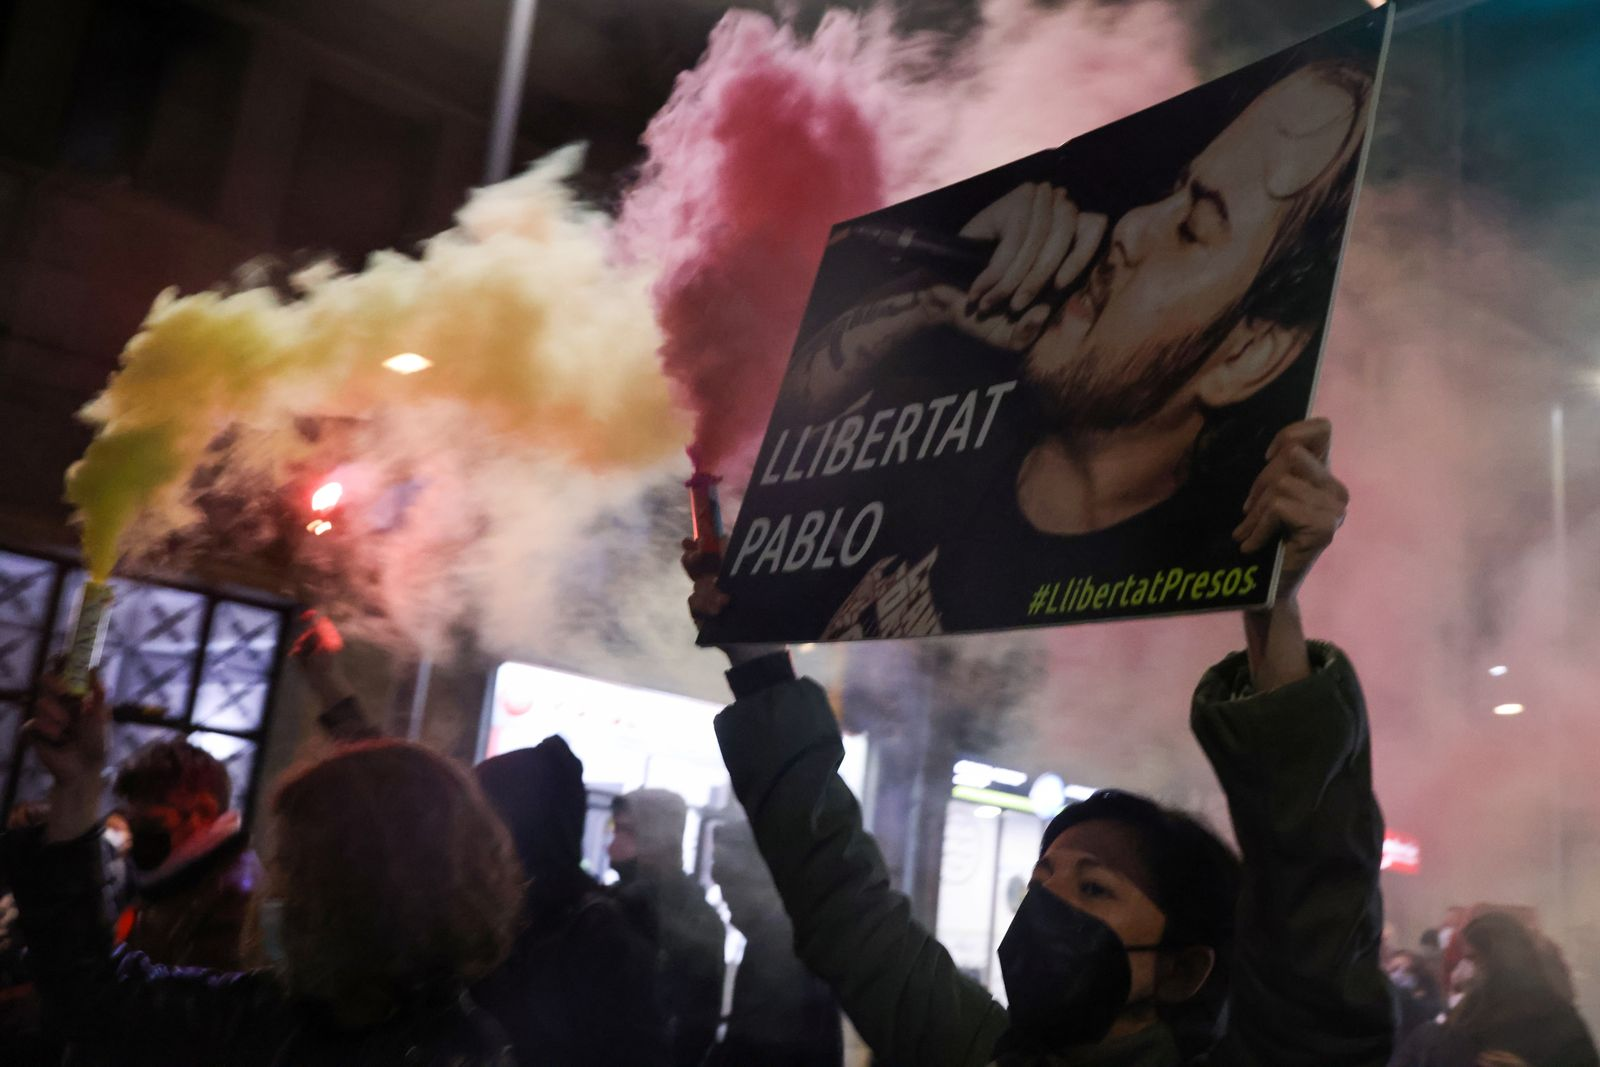 Protest against arrest of Spanish rapper Pablo Hasel in Barcelona